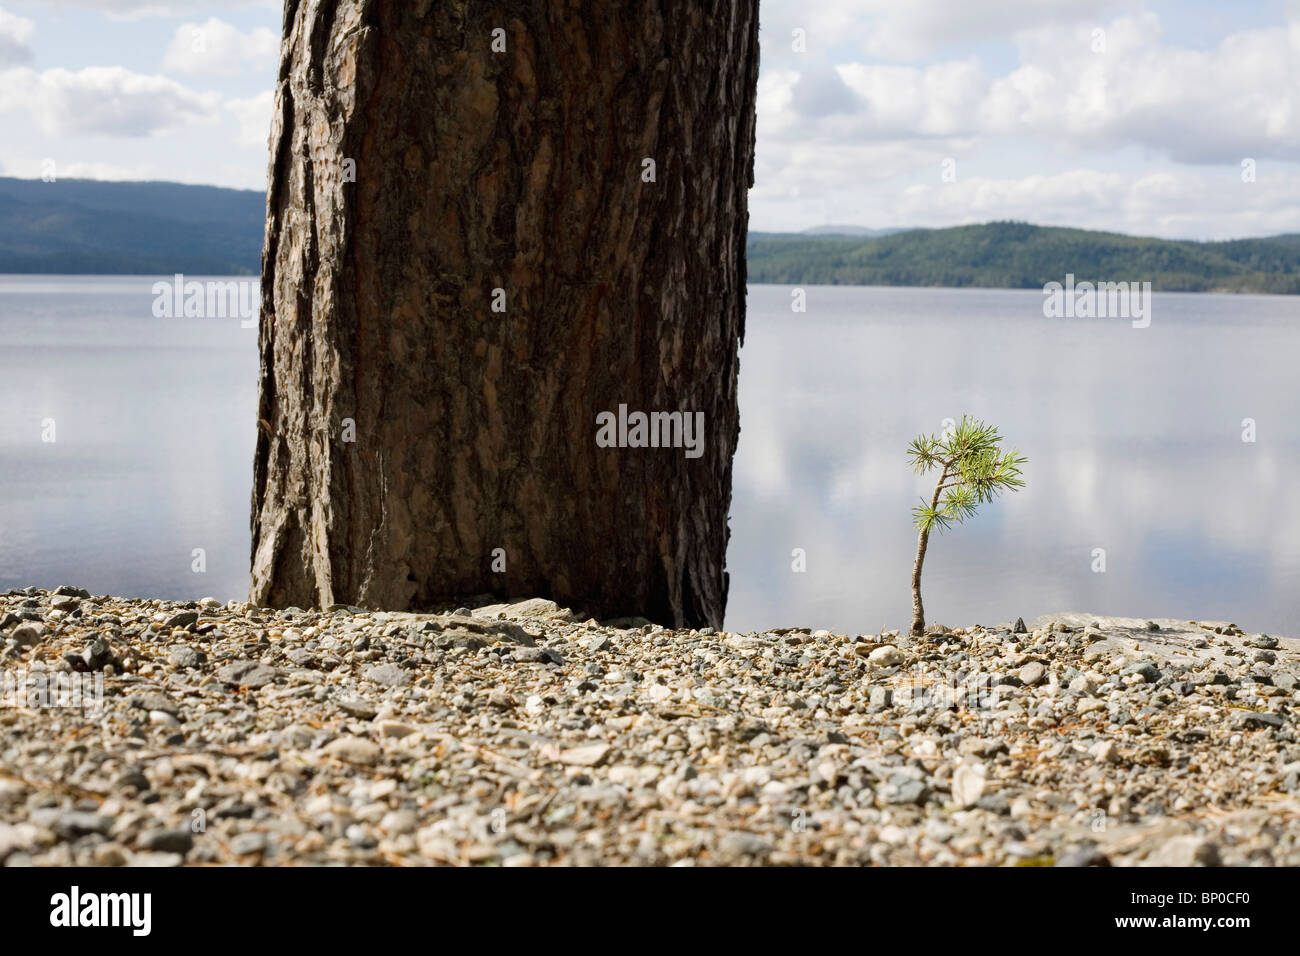 Small pine tree next to big tree by lake - Stock Image